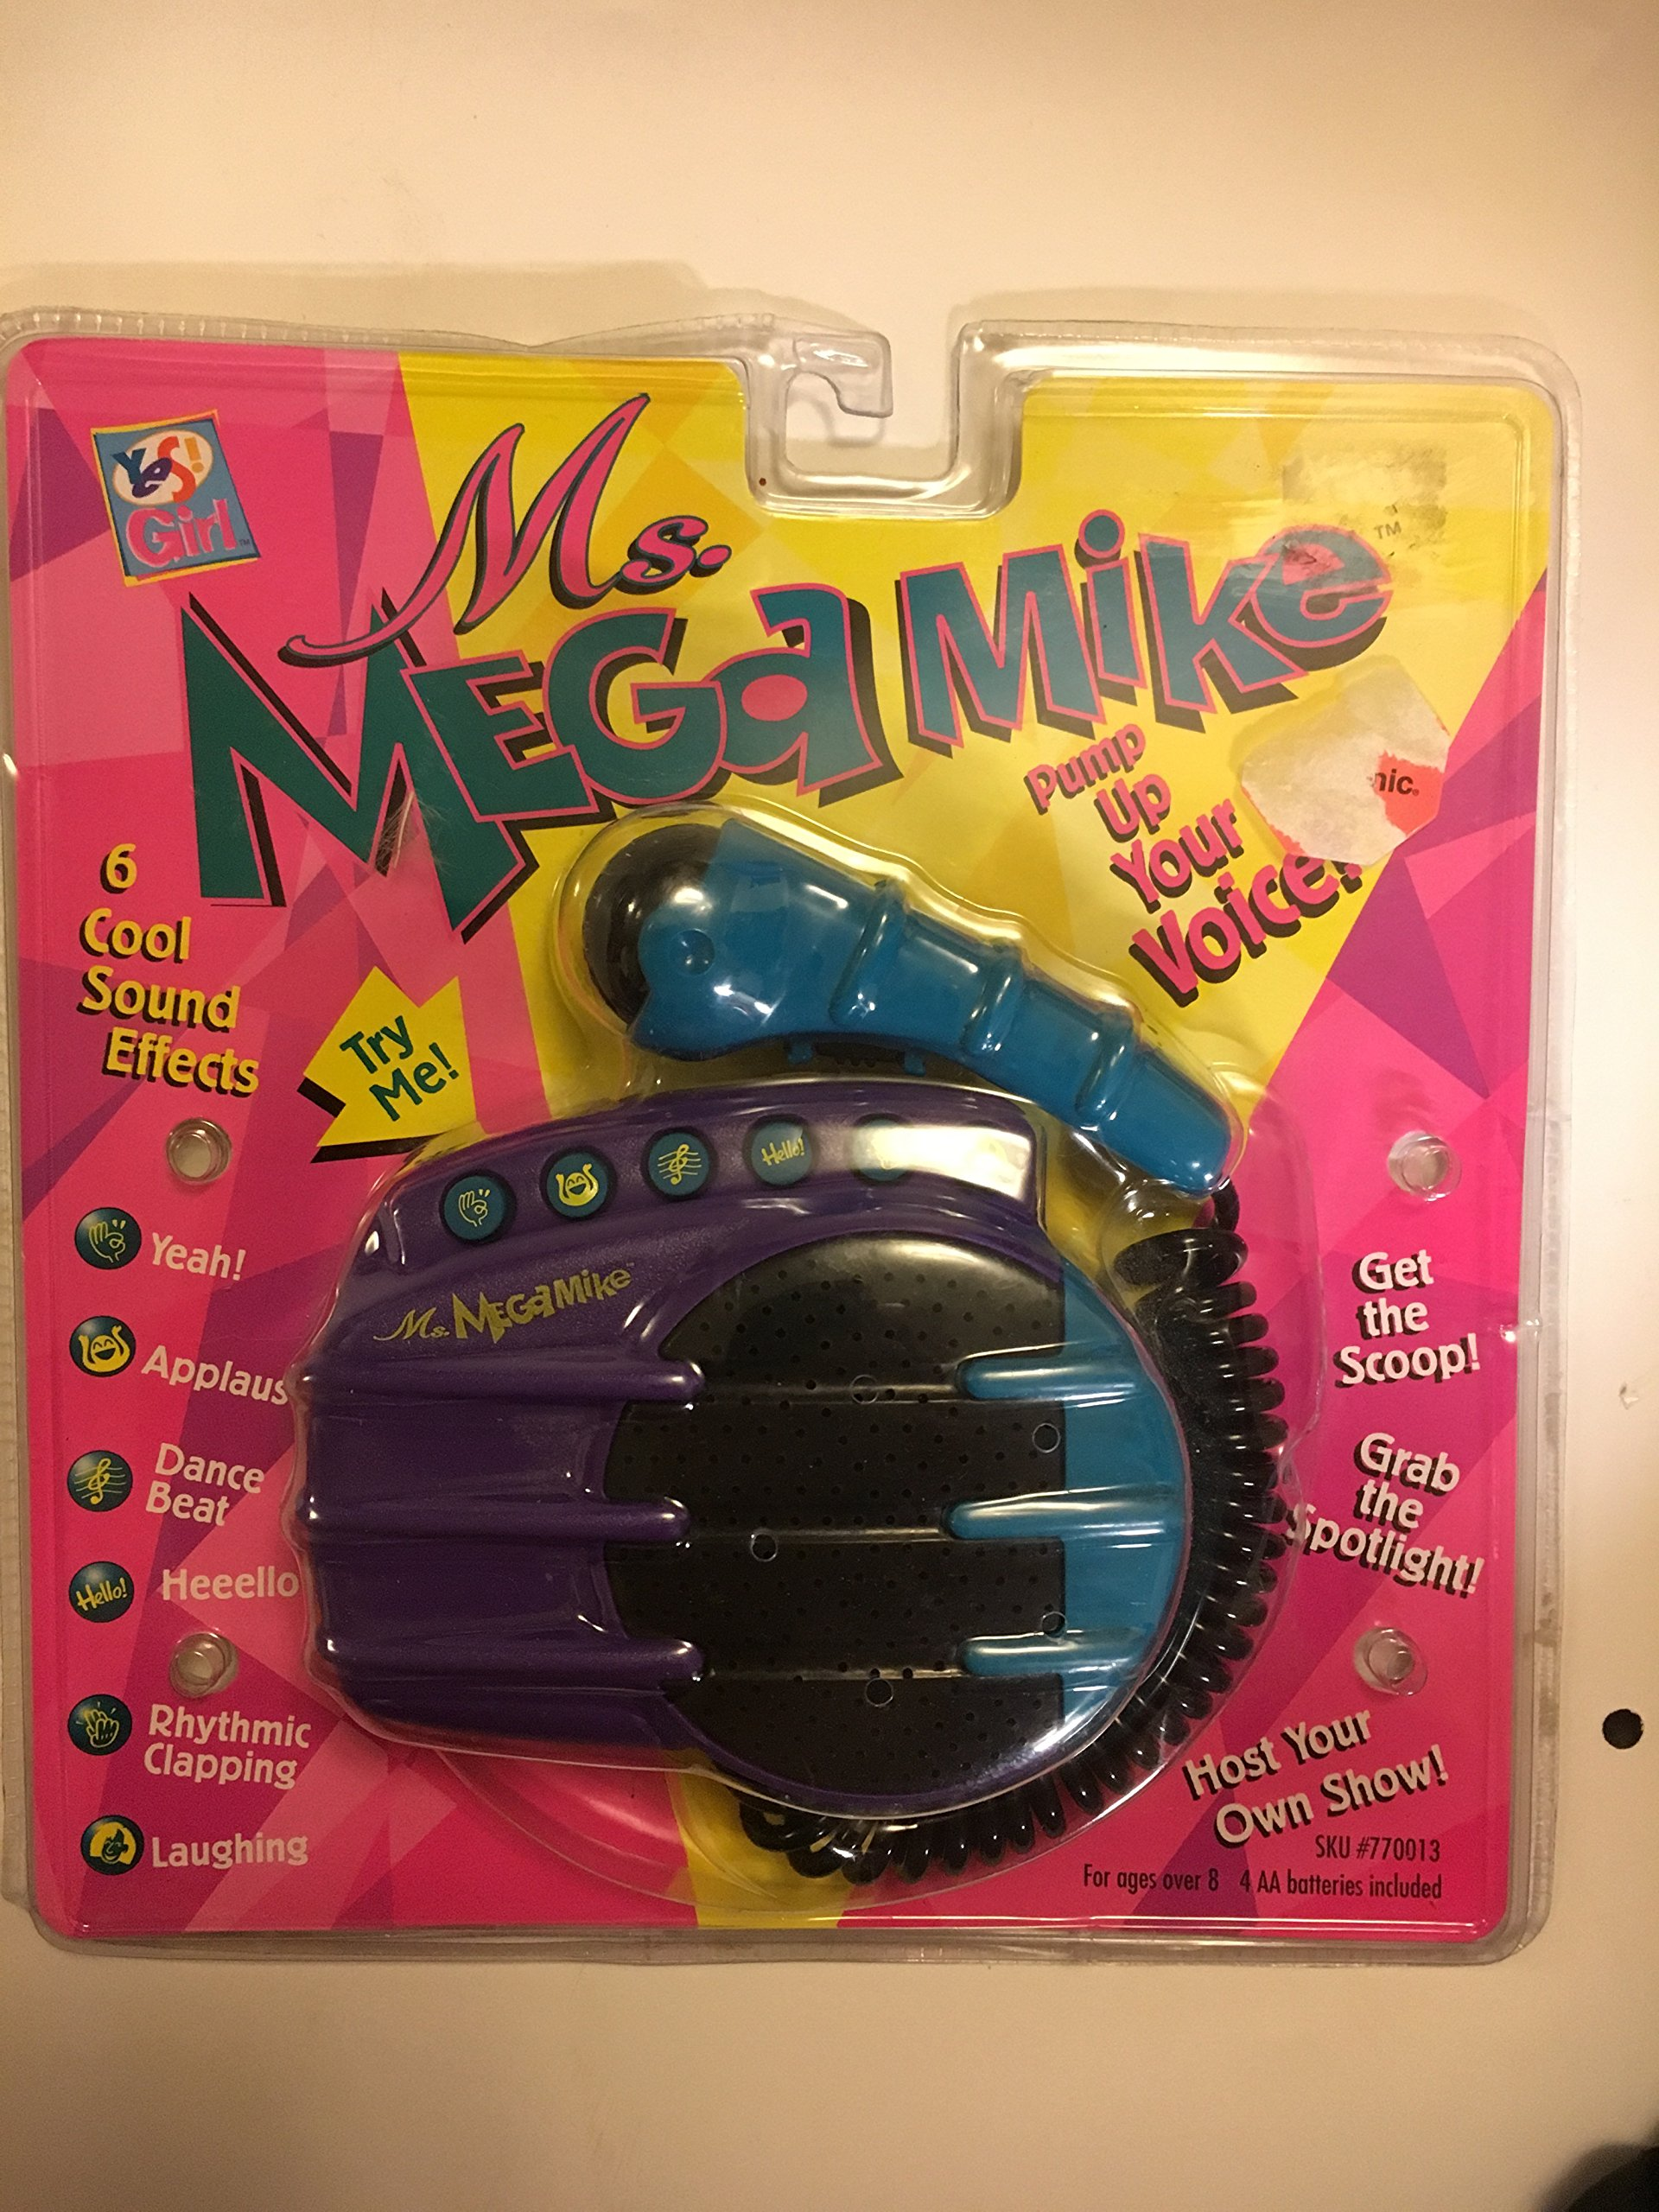 Ms. Mega Mike Portable Microphone System by Yes Girl! 6 Cool Sound Effects by Yes Girl (Image #1)